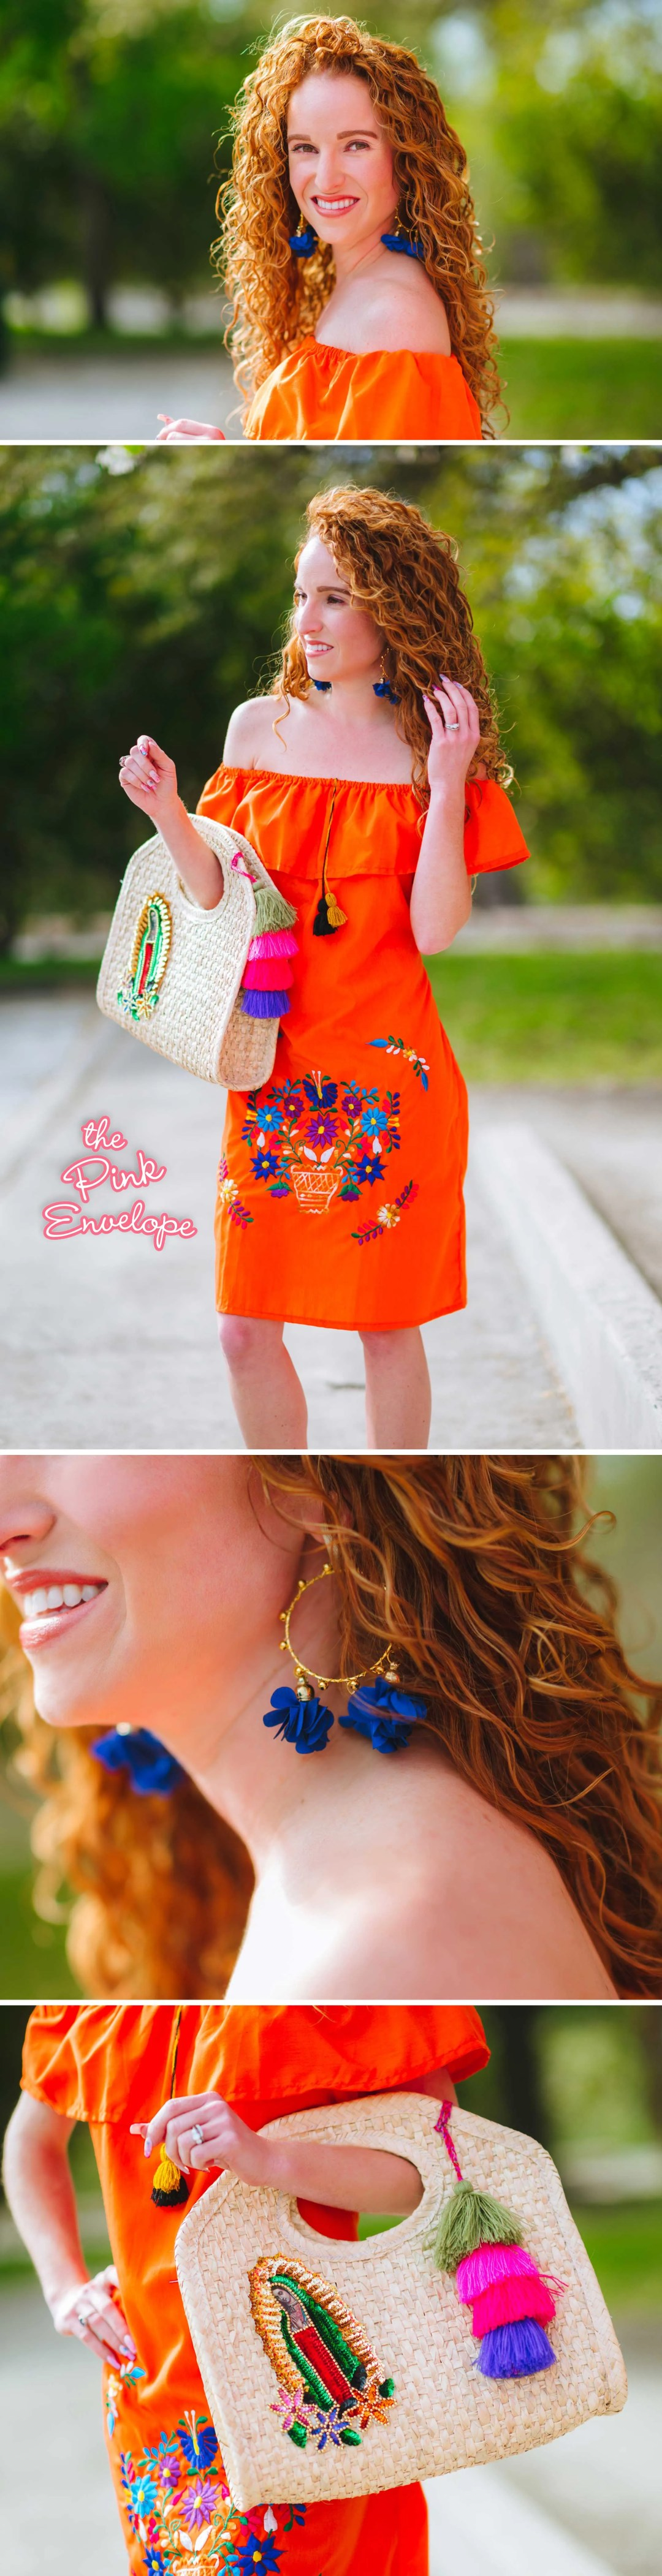 Orange Floral Fiesta Outfit Ideas for San Antonio Fiest Fashion Haul - My Outfit Picks - The Pink Envelope #fiesta #fashion